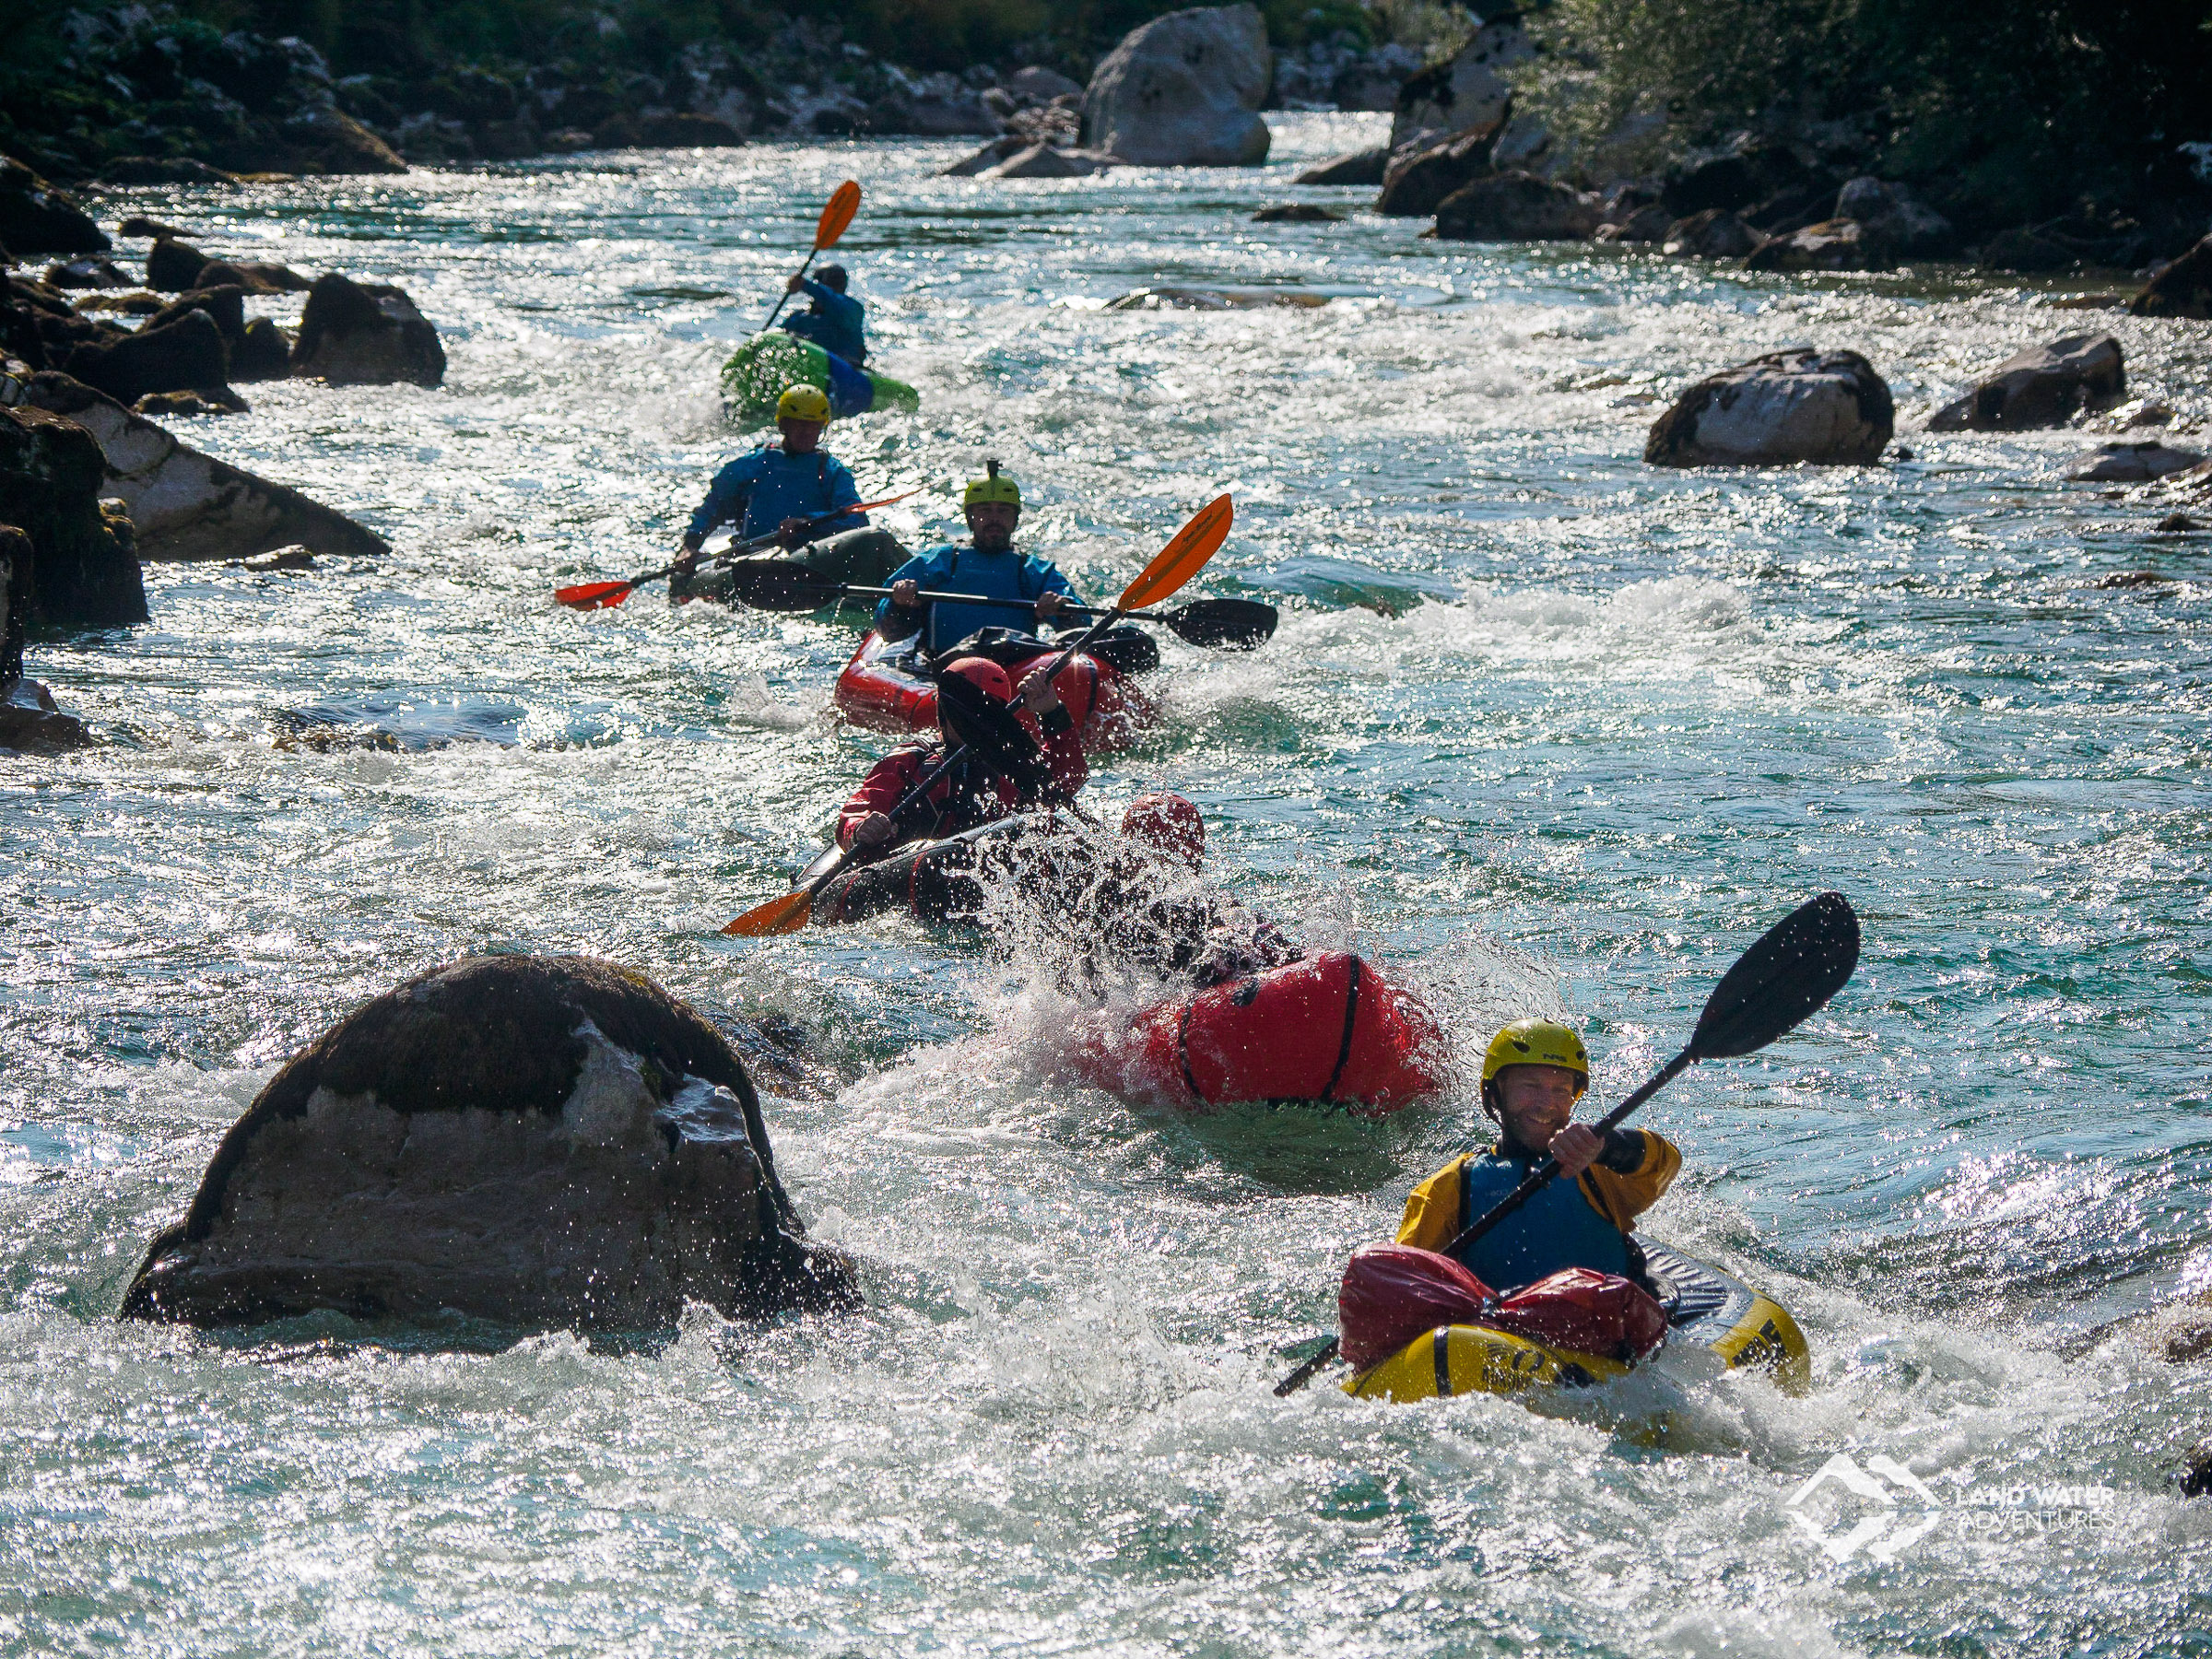 Unterwegs in den türkisfarbenen Soca-Wellen © Land Water Adventures